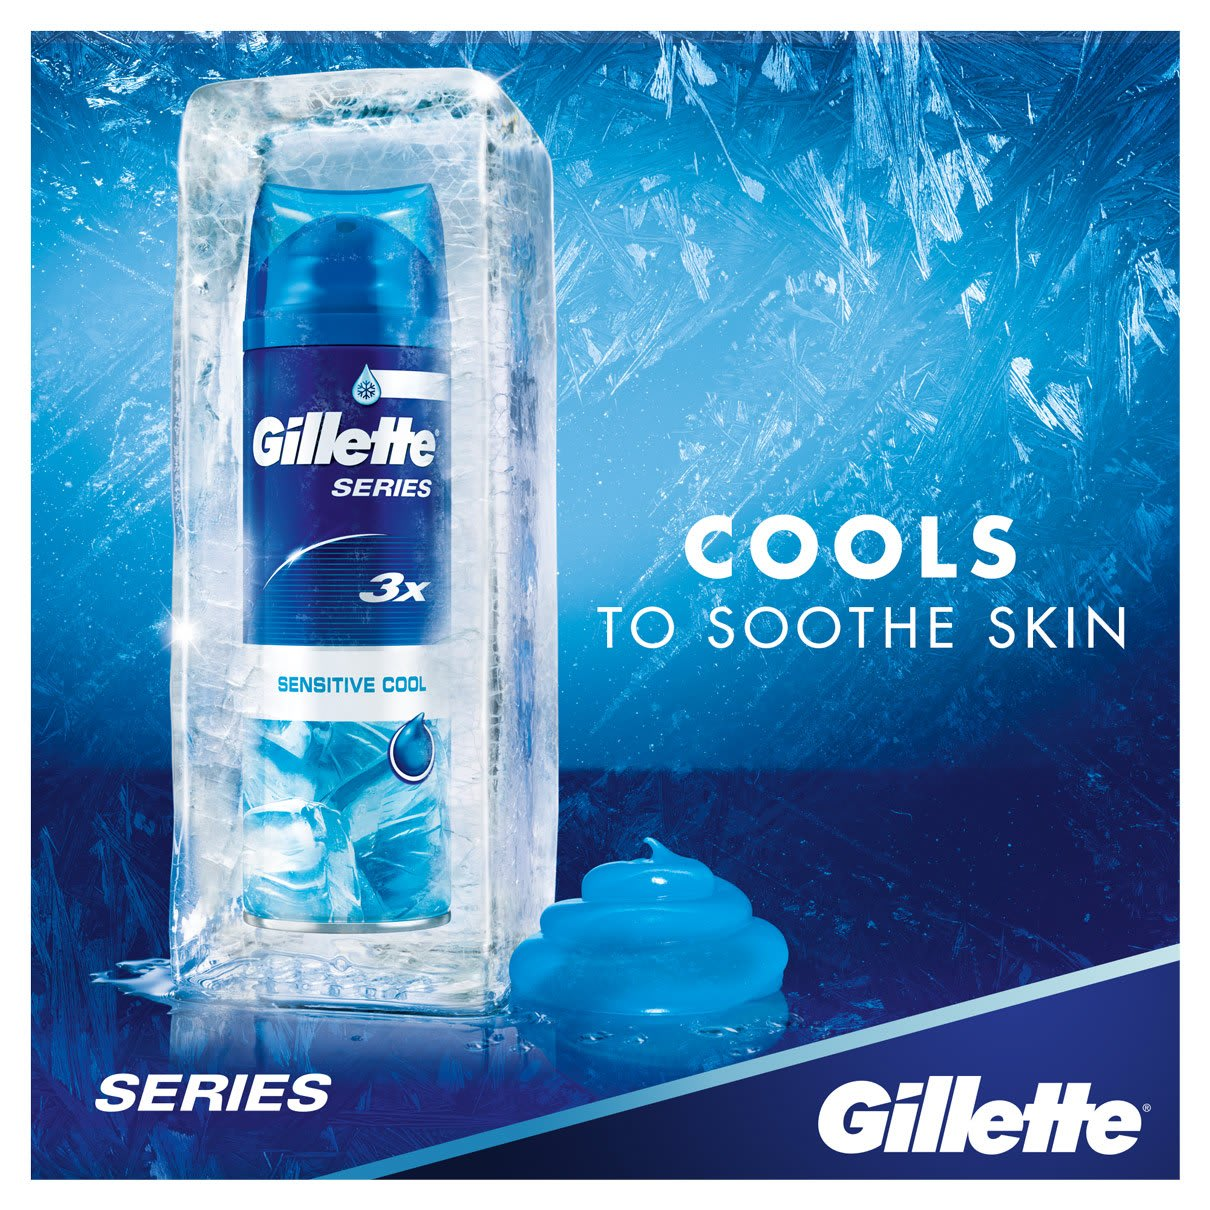 Cools to Soothe Skin | Gillette Series Sensitive Cool Shave Gel